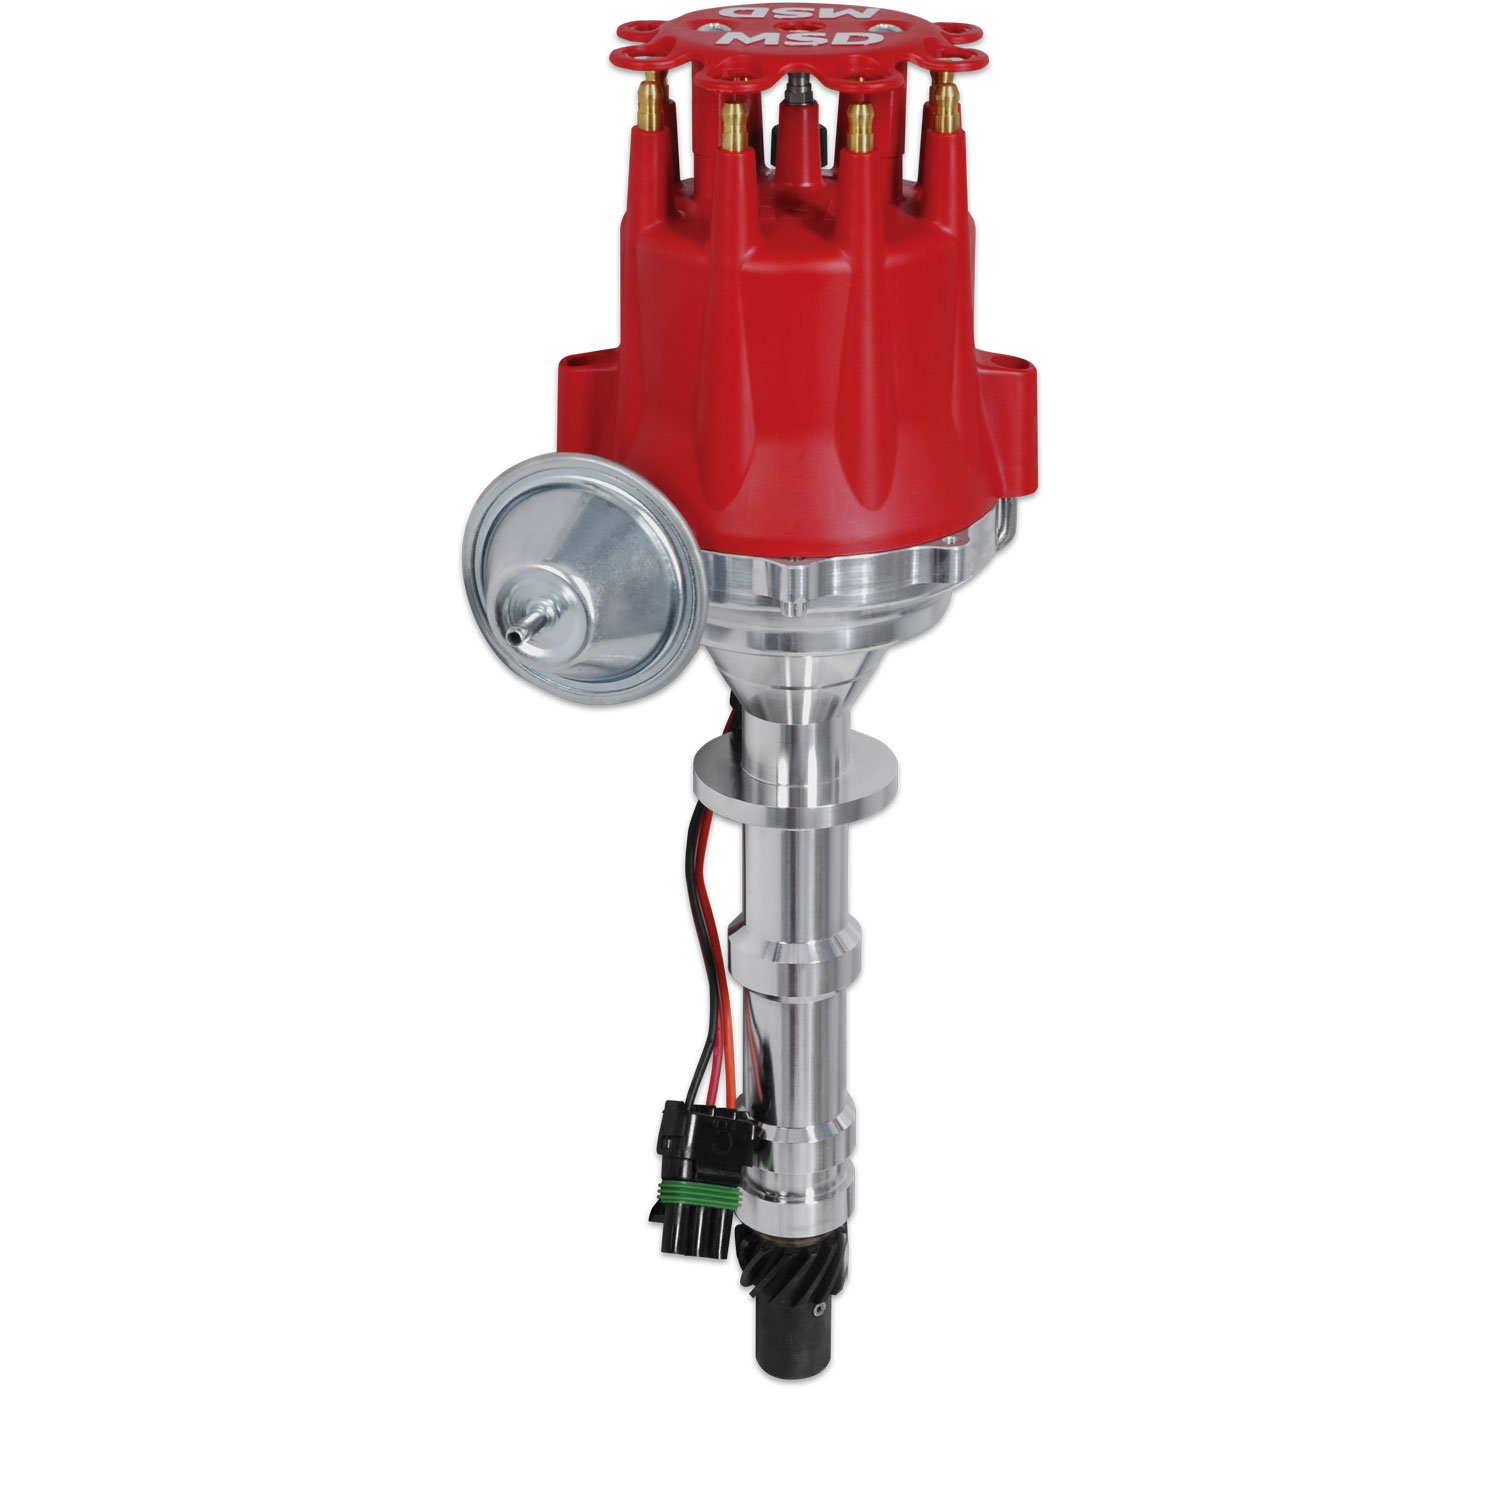 hight resolution of 8393 chevy 348 409 ready to run distributor image